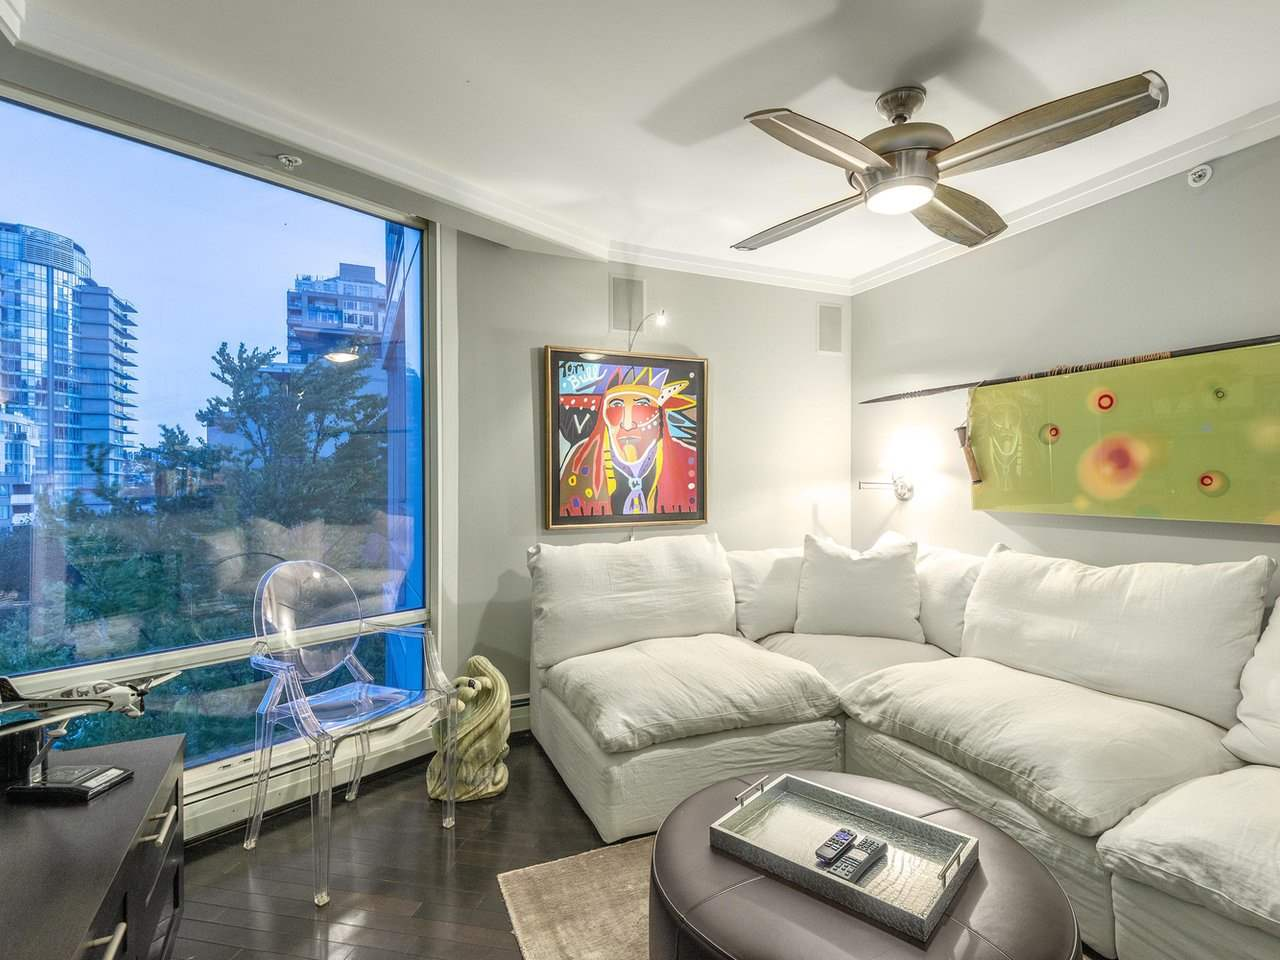 705 1201 MARINASIDE CRESCENT - Yaletown Apartment/Condo for sale, 3 Bedrooms (R2480191) - #5